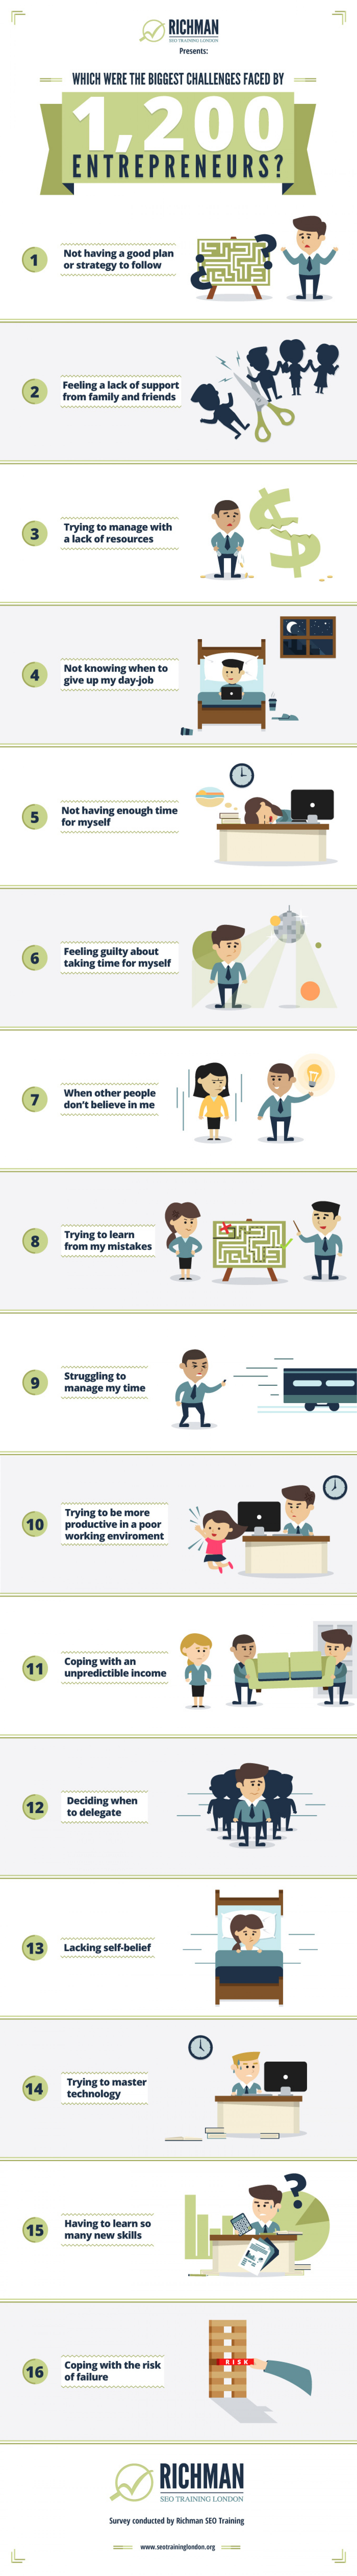 Which are the Biggest Challenges Faced by 1,200 Entrepreneurs? Infographic